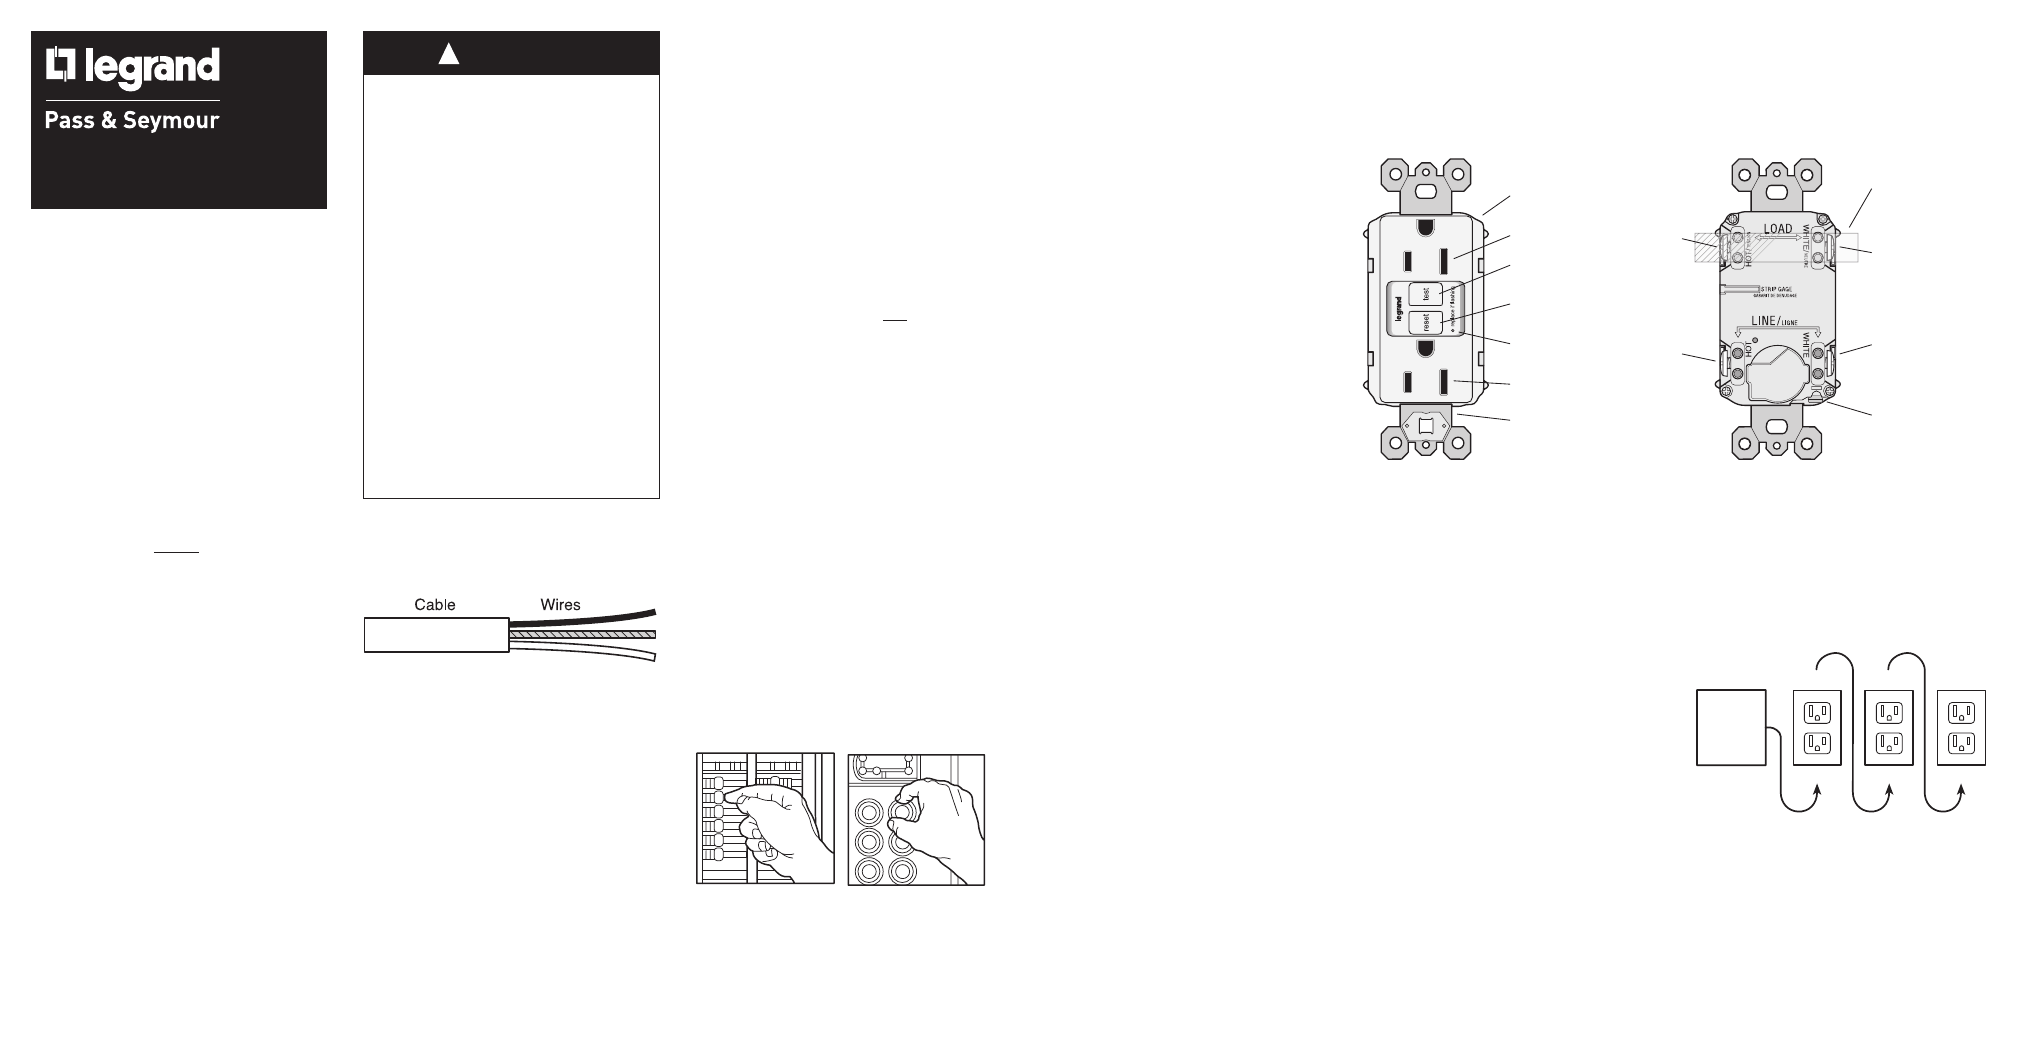 Legrand 1595h Series Gfci Receptacle Revb User Manual 2 Pages How To Wire Outlets In Diagram Background Image